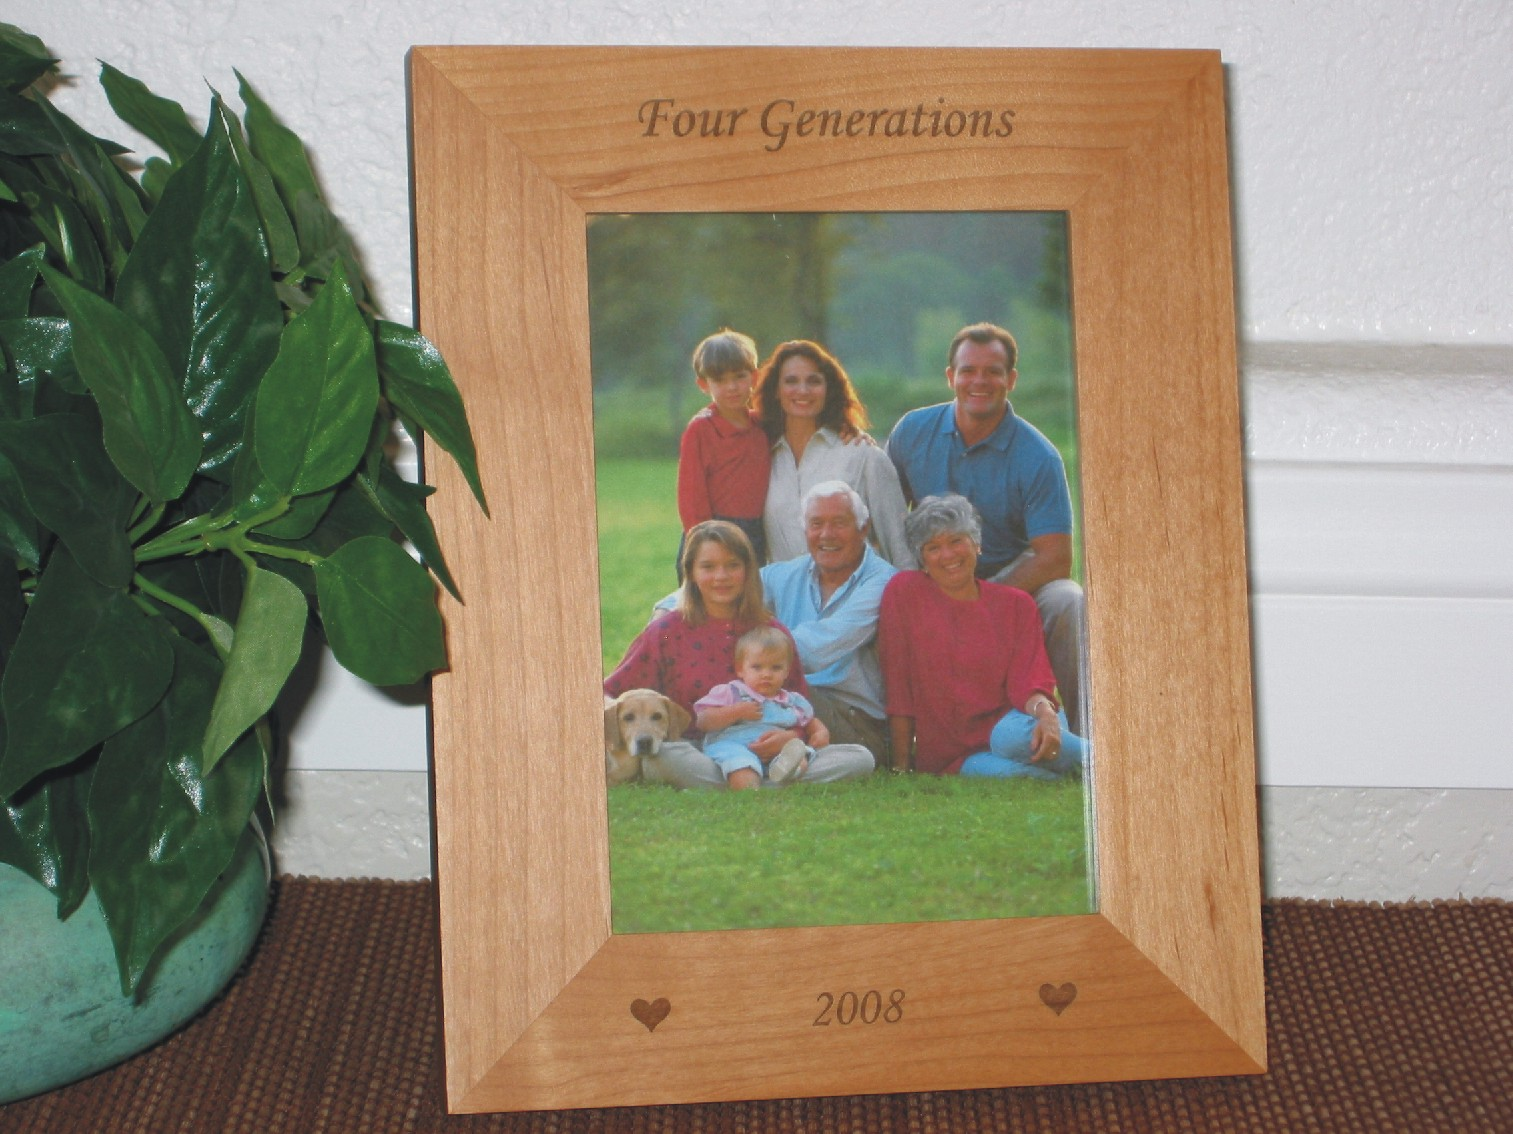 Generations picture frame personalized frame laser engrave 3 generations picture frame personalized frame laser engrave 3 5 generations jeuxipadfo Gallery